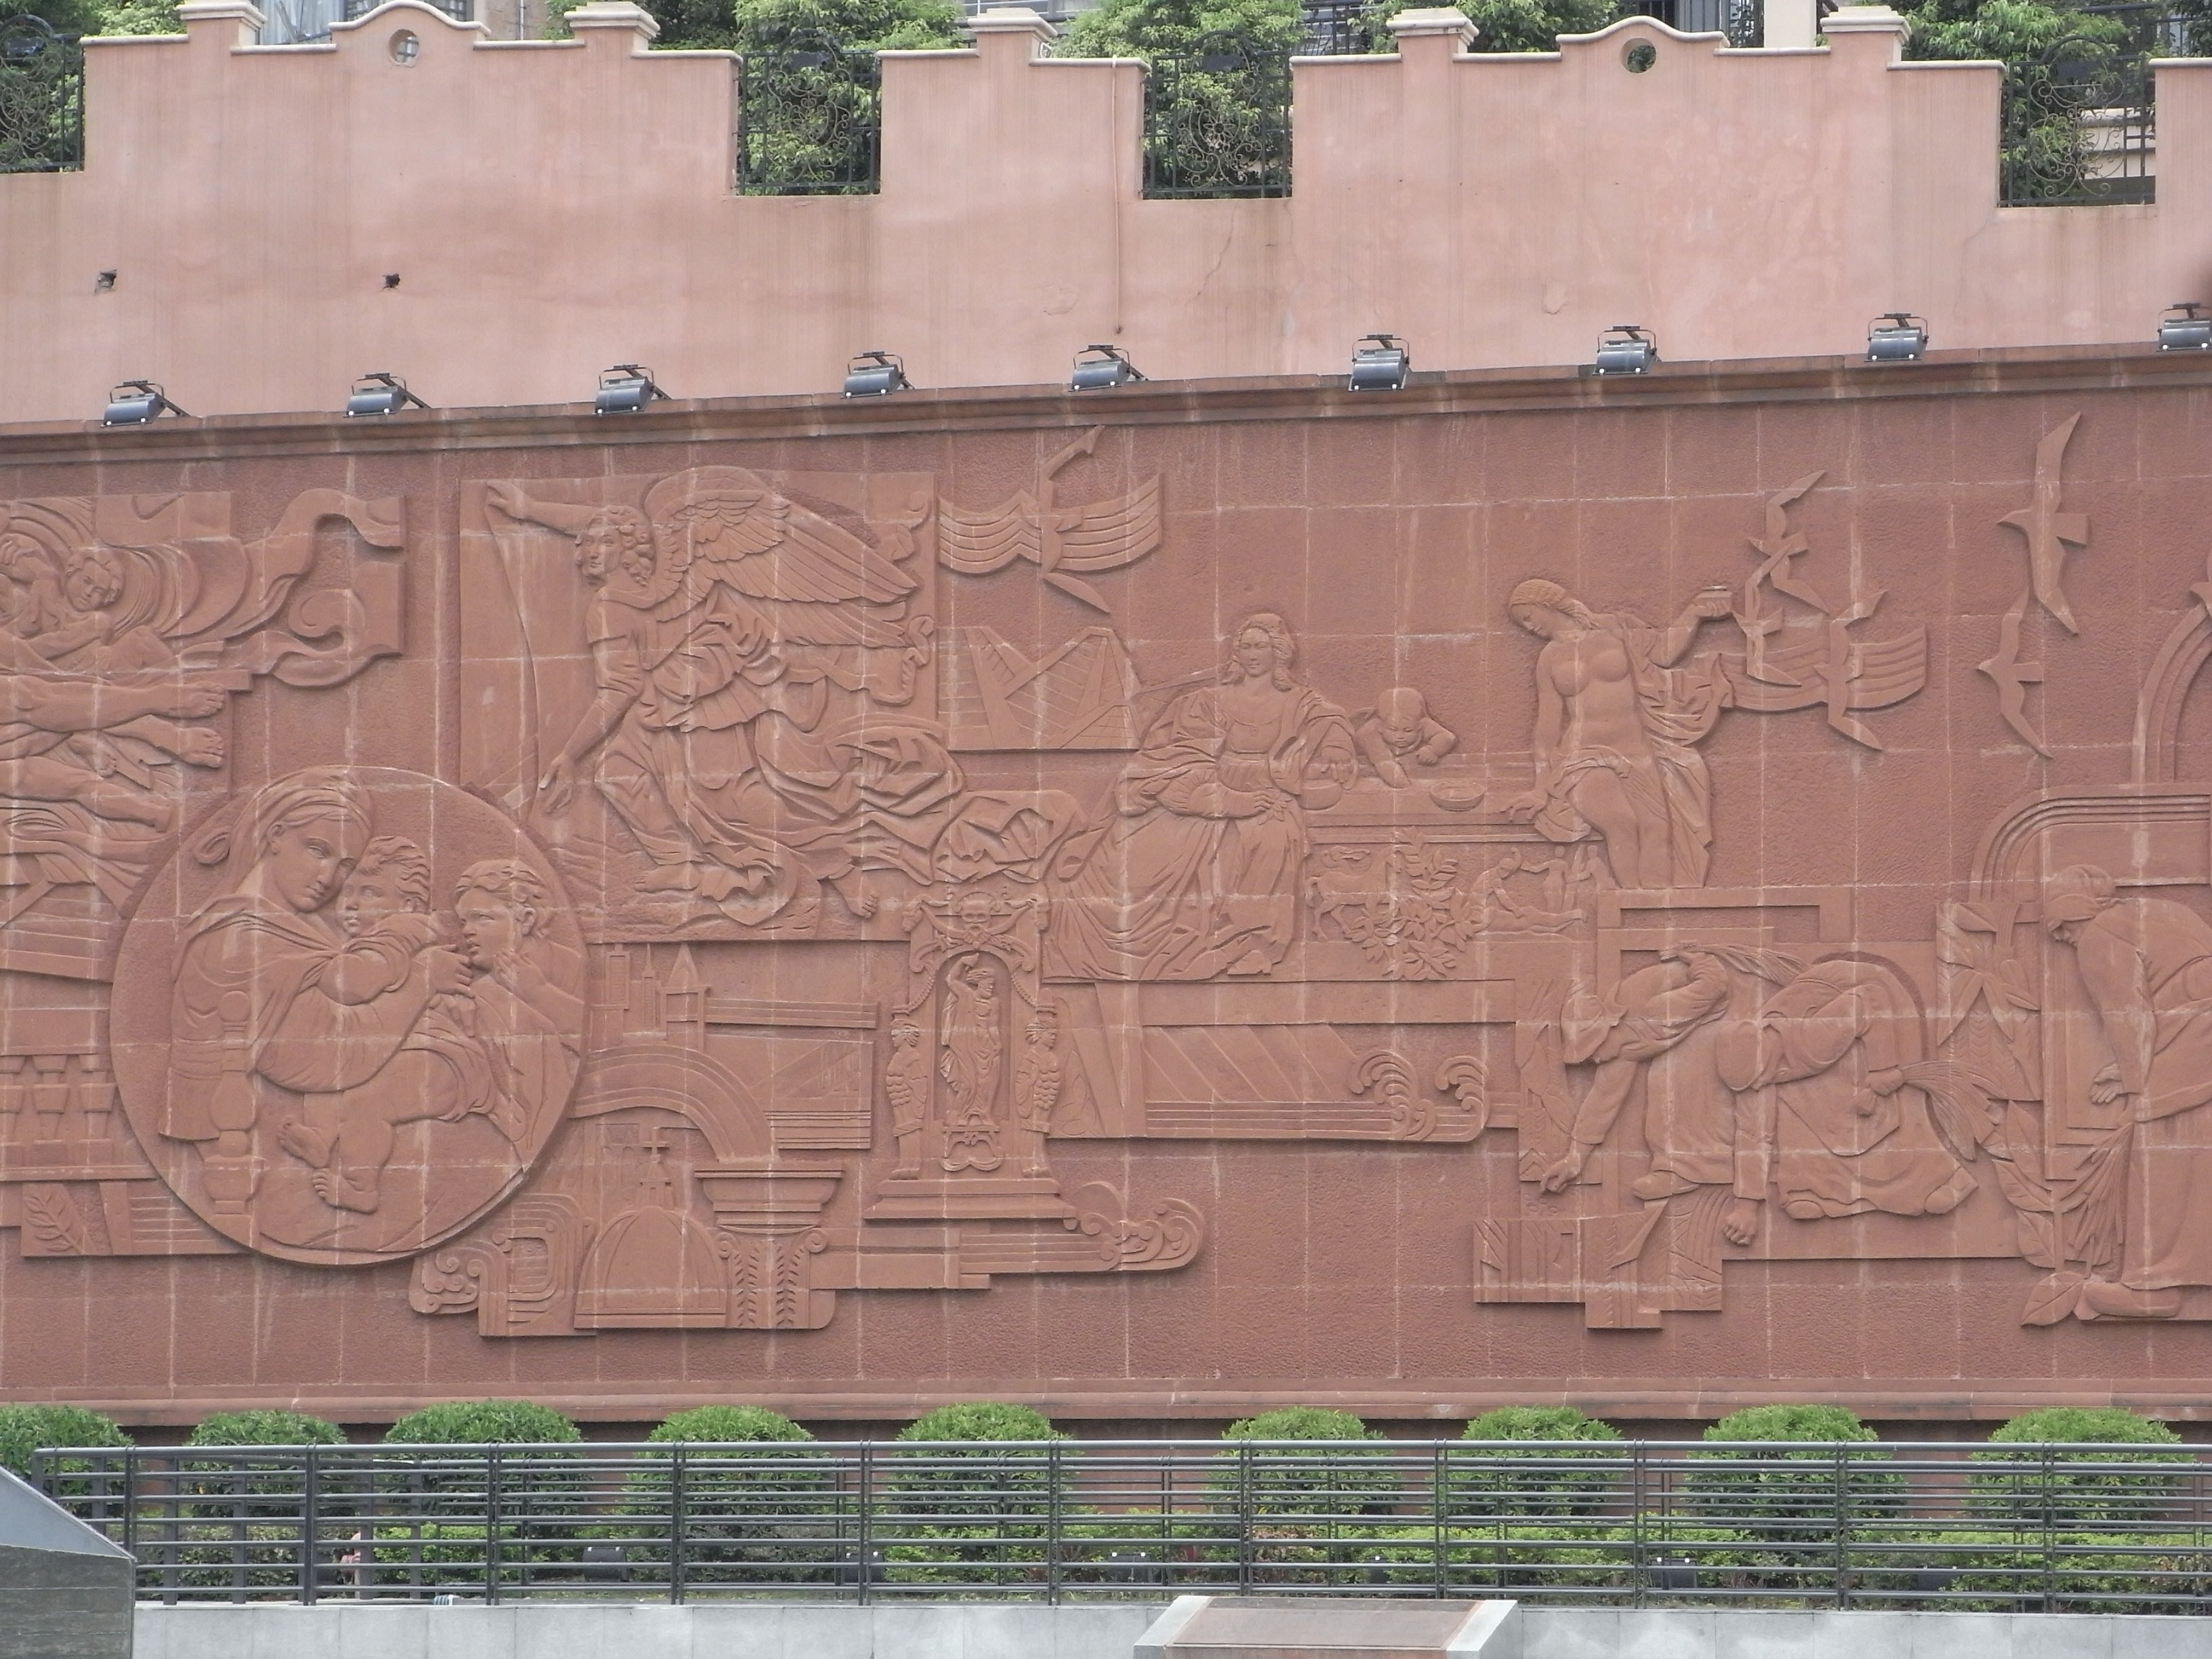 File sz da fen oil painting village art gallery outdoor wall 07 reliefs jpg wikimedia - How to paint exterior wall decor ...